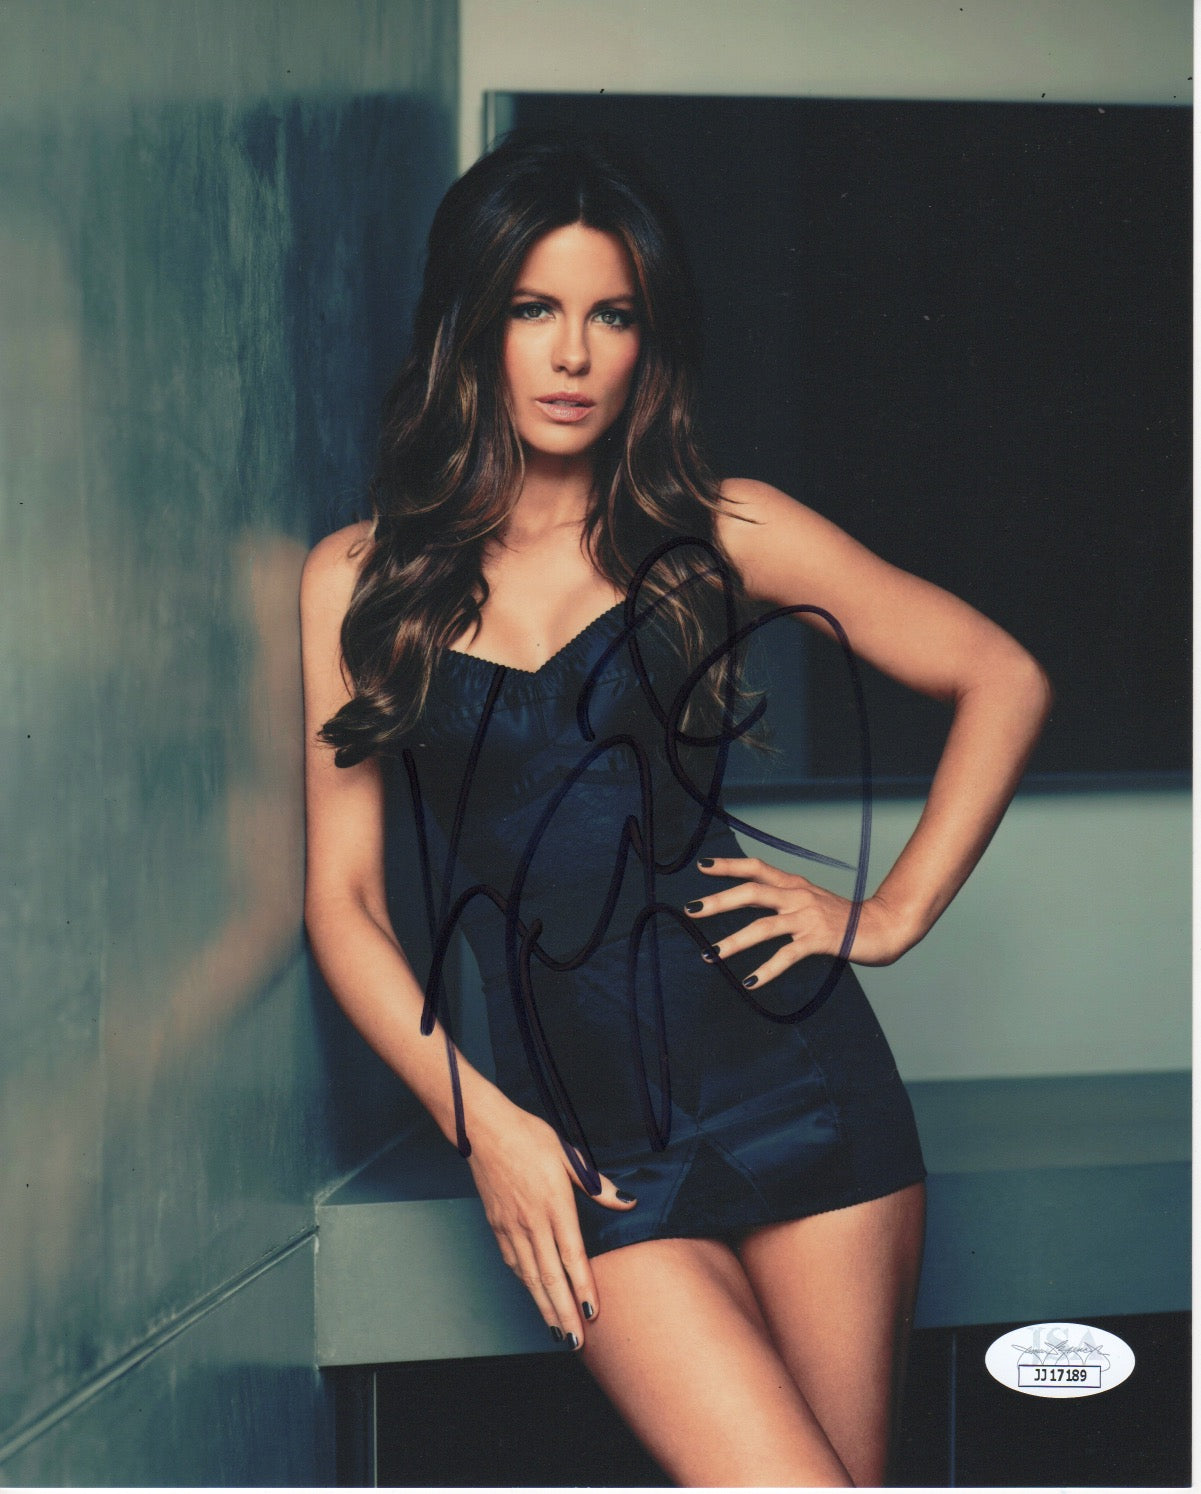 Kate Beckinsale Sexy Signed Autograph 8x10 Photo JSA Authentic #3 - Outlaw Hobbies Authentic Autographs